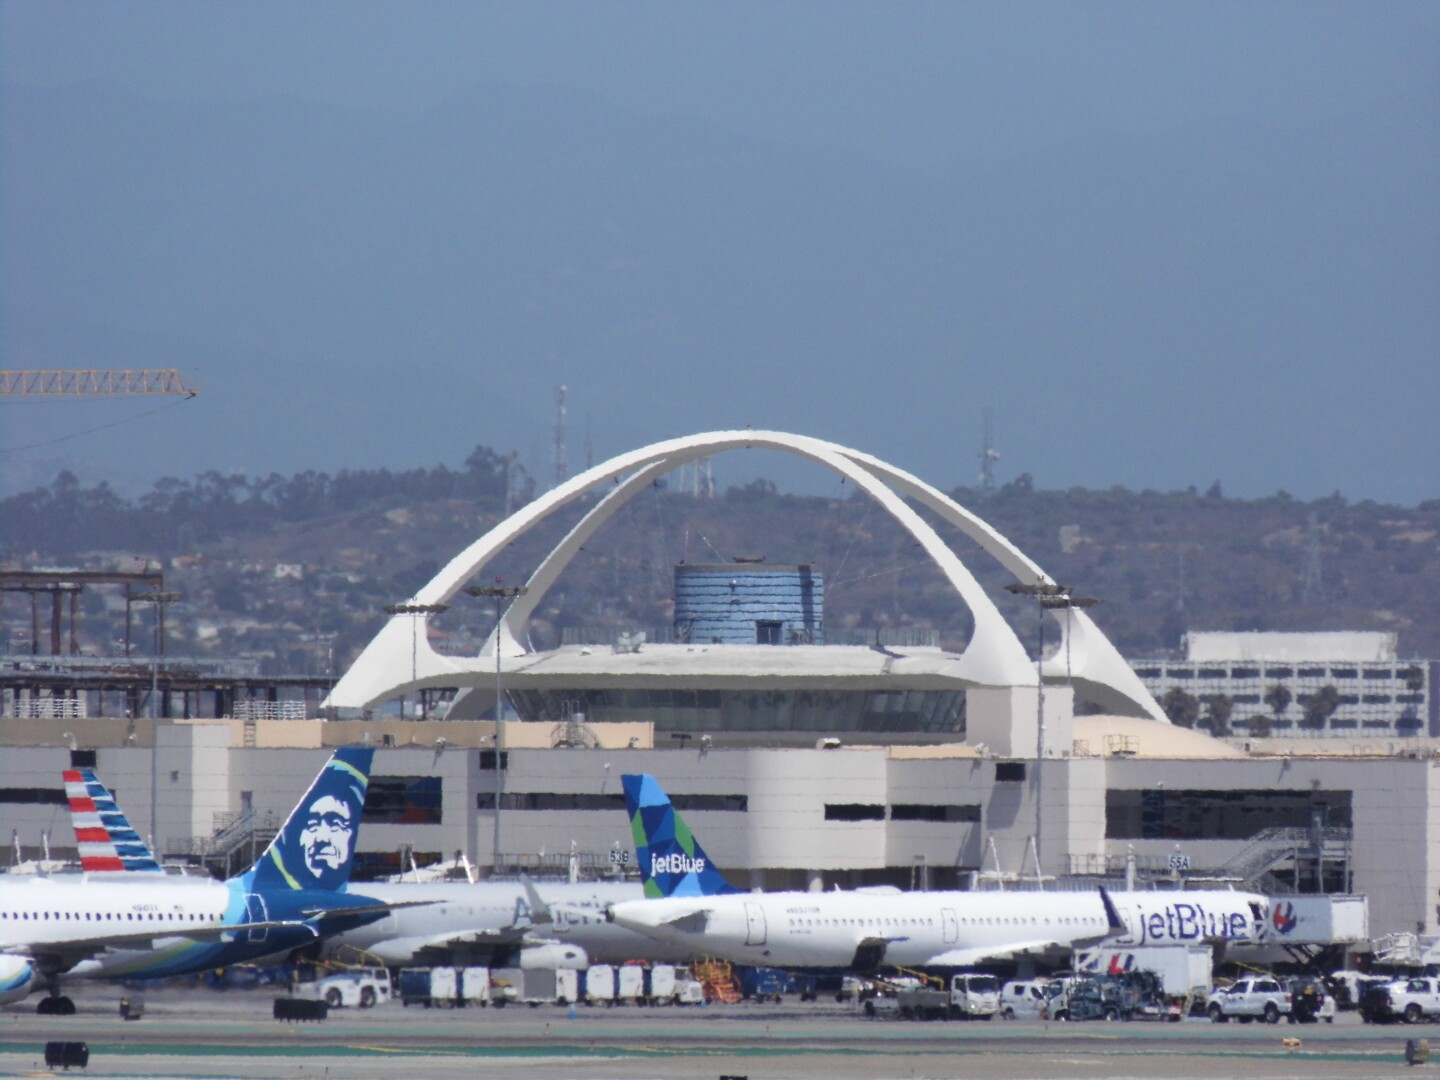 A view of LAX airport with planes docked in the runway.